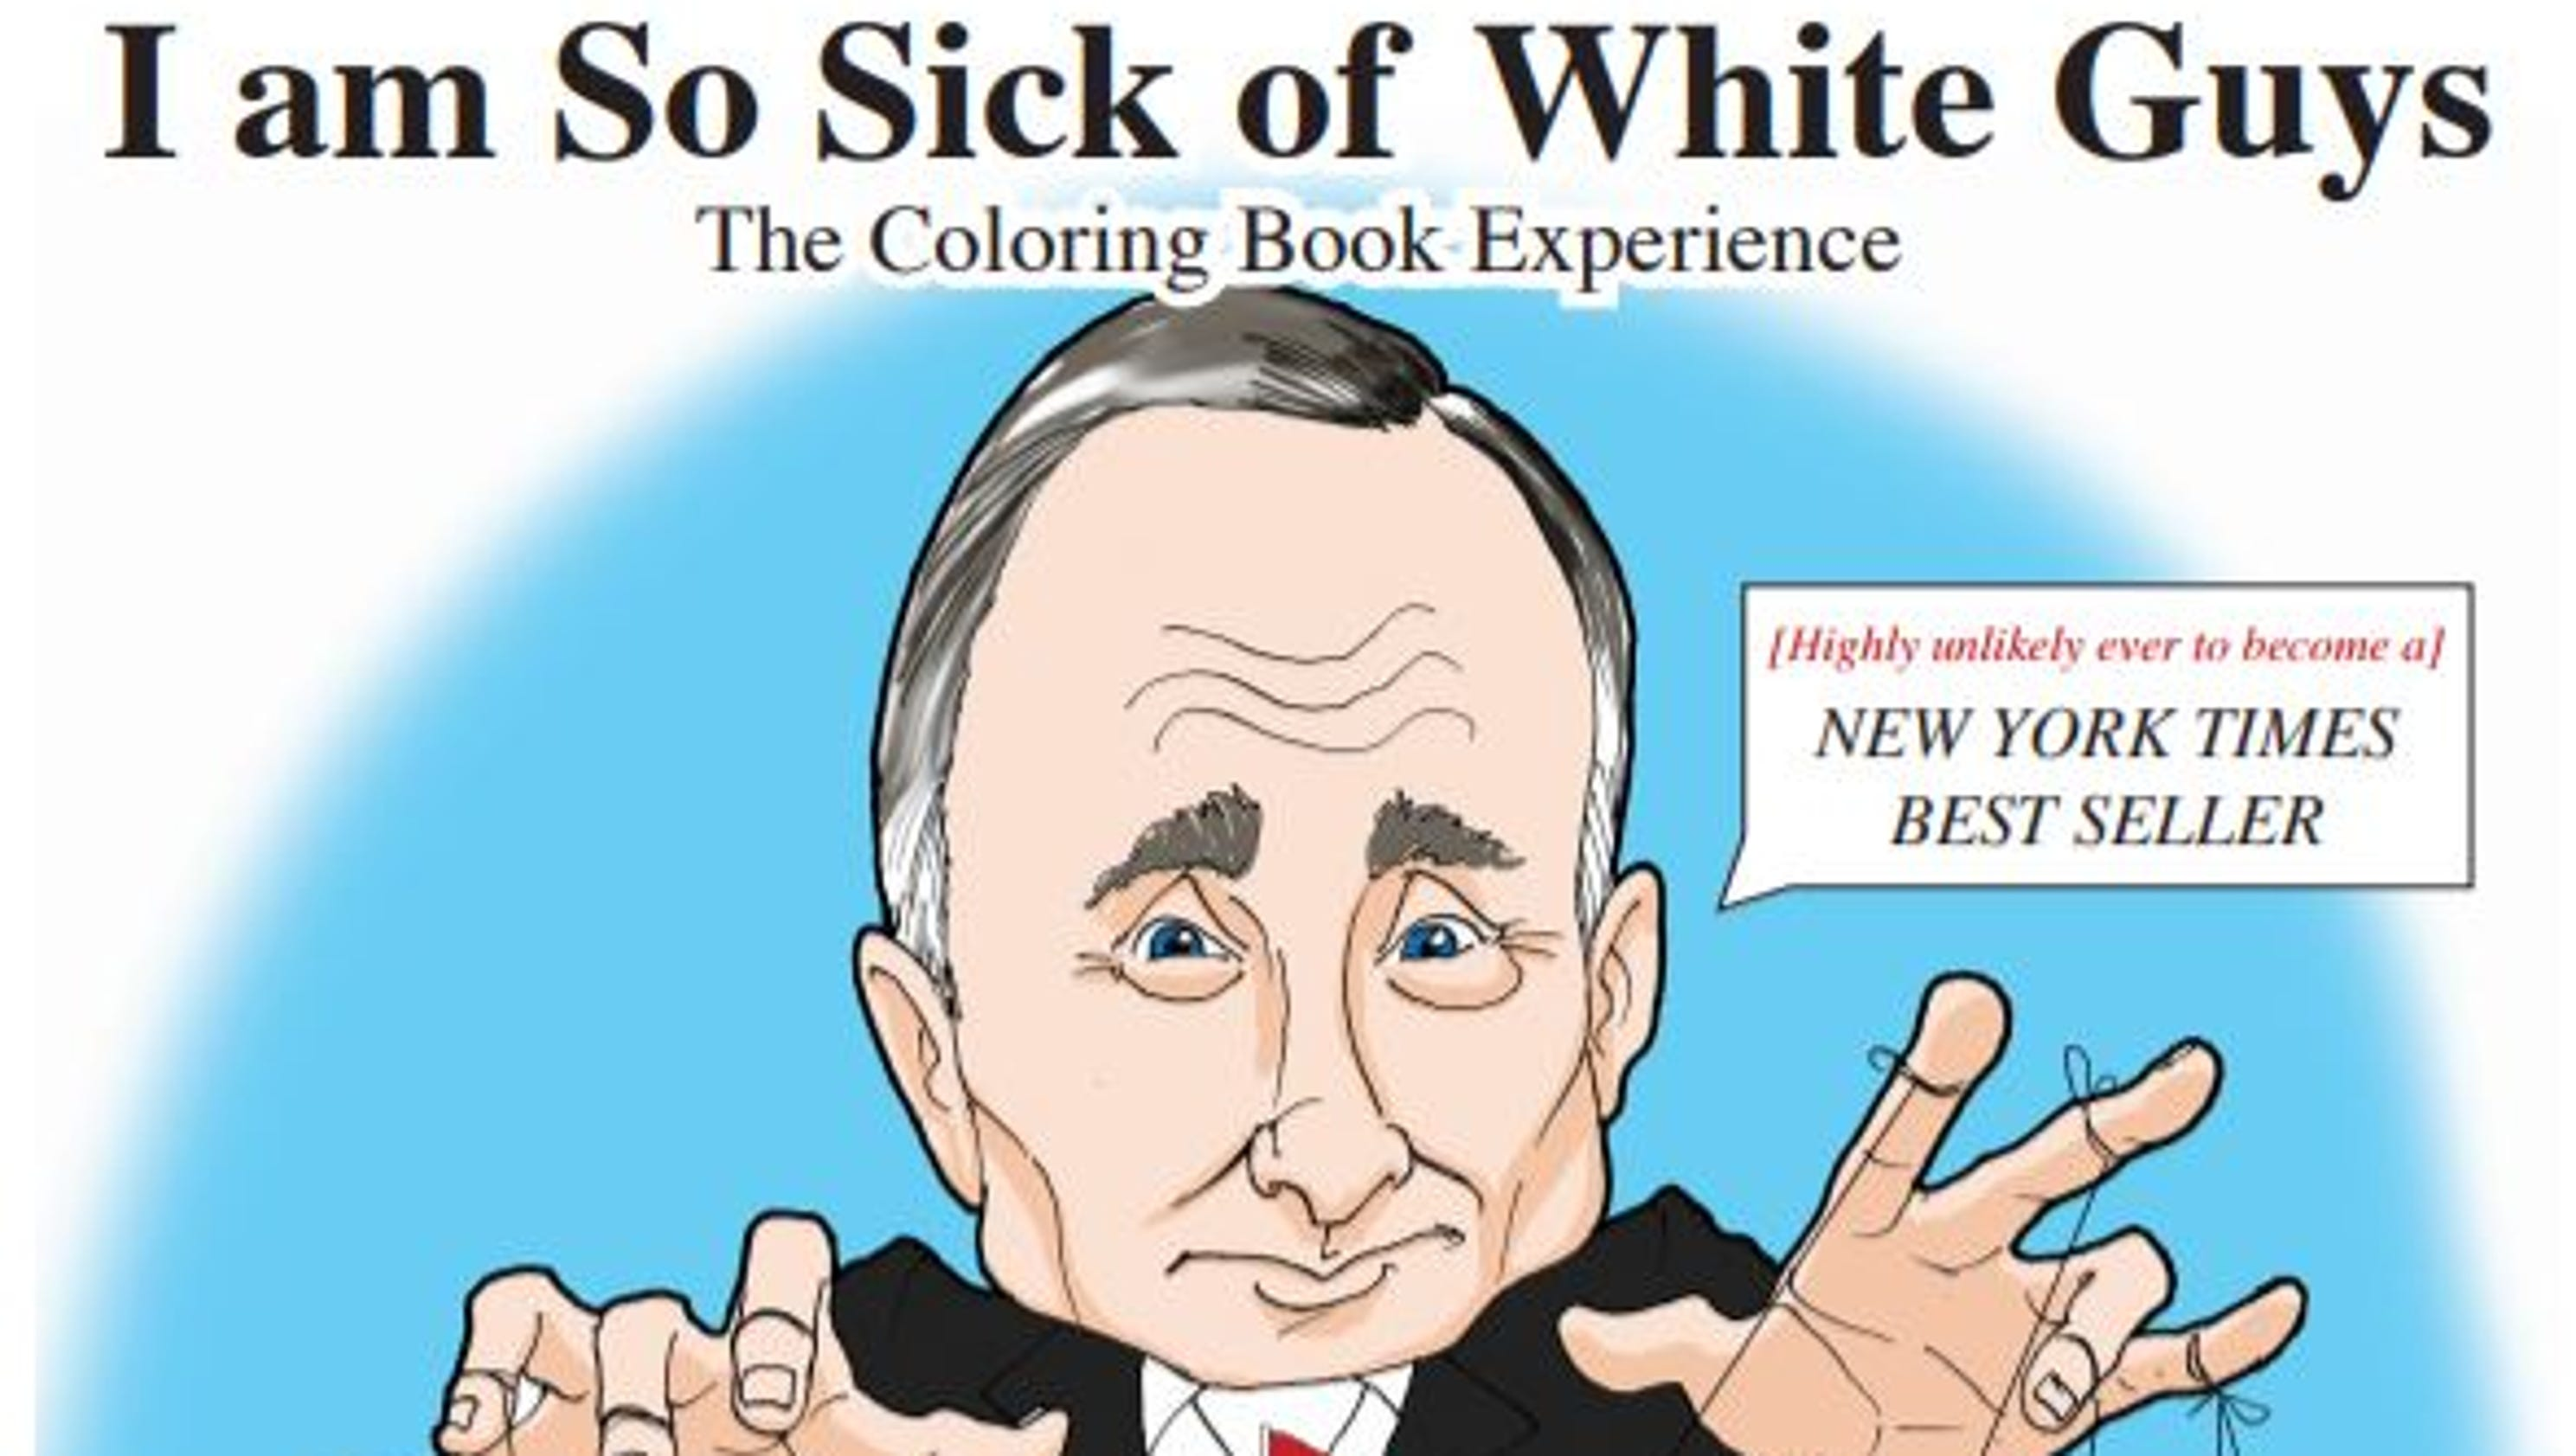 Adult coloring book i am so sick of white guys hits a nerve altavistaventures Image collections